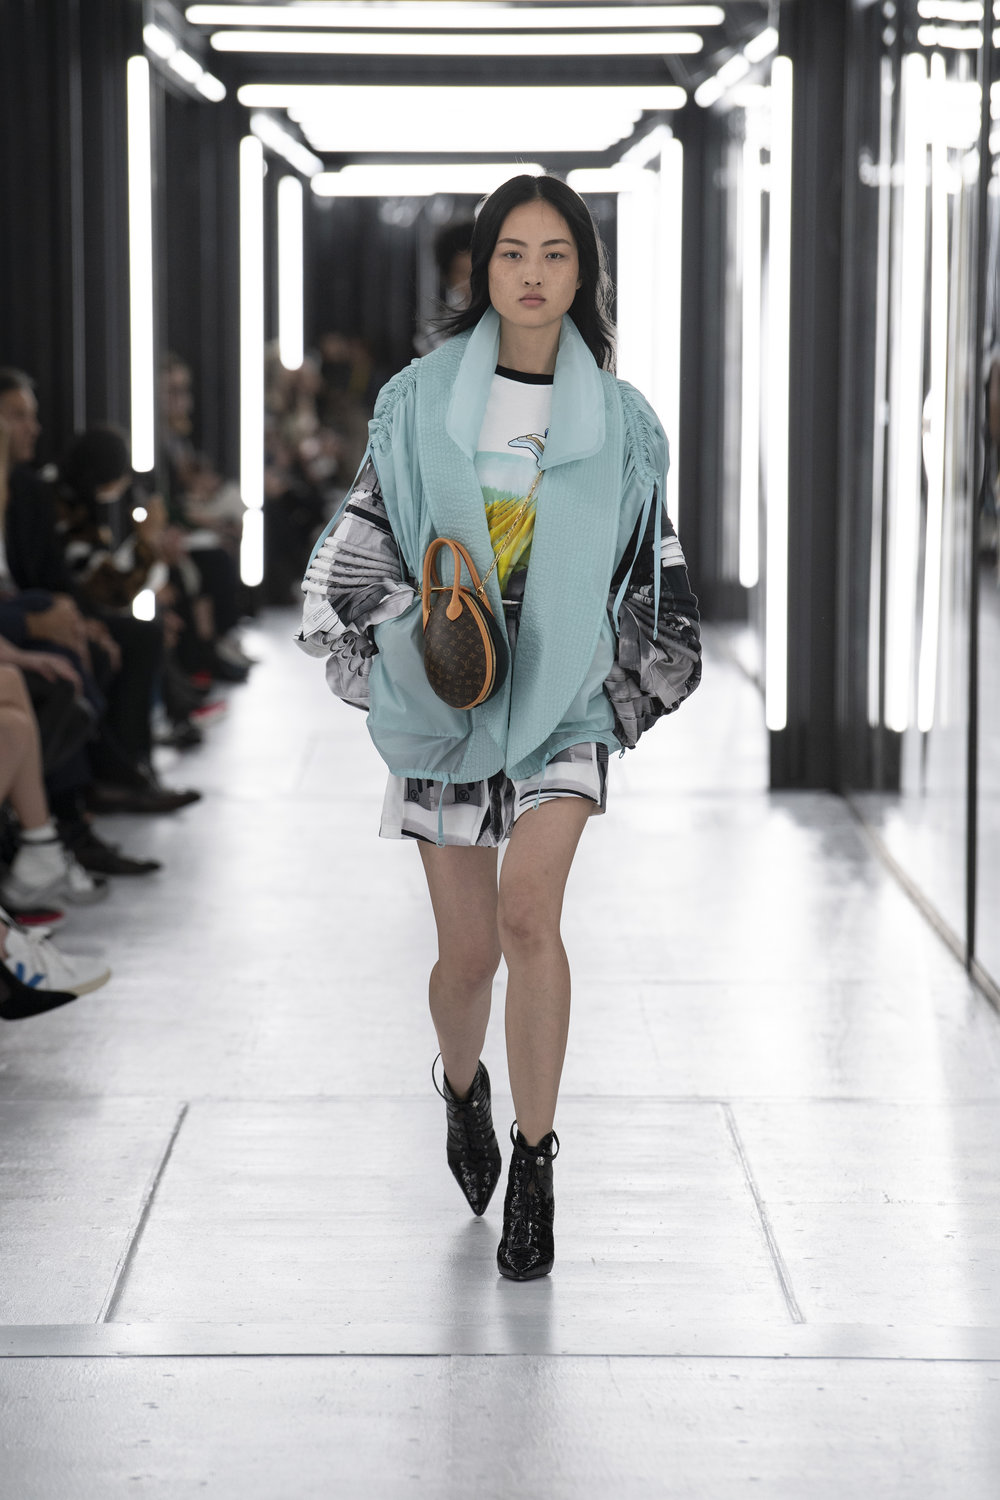 Louis_Vuitton_SS19_Look_06.jpg